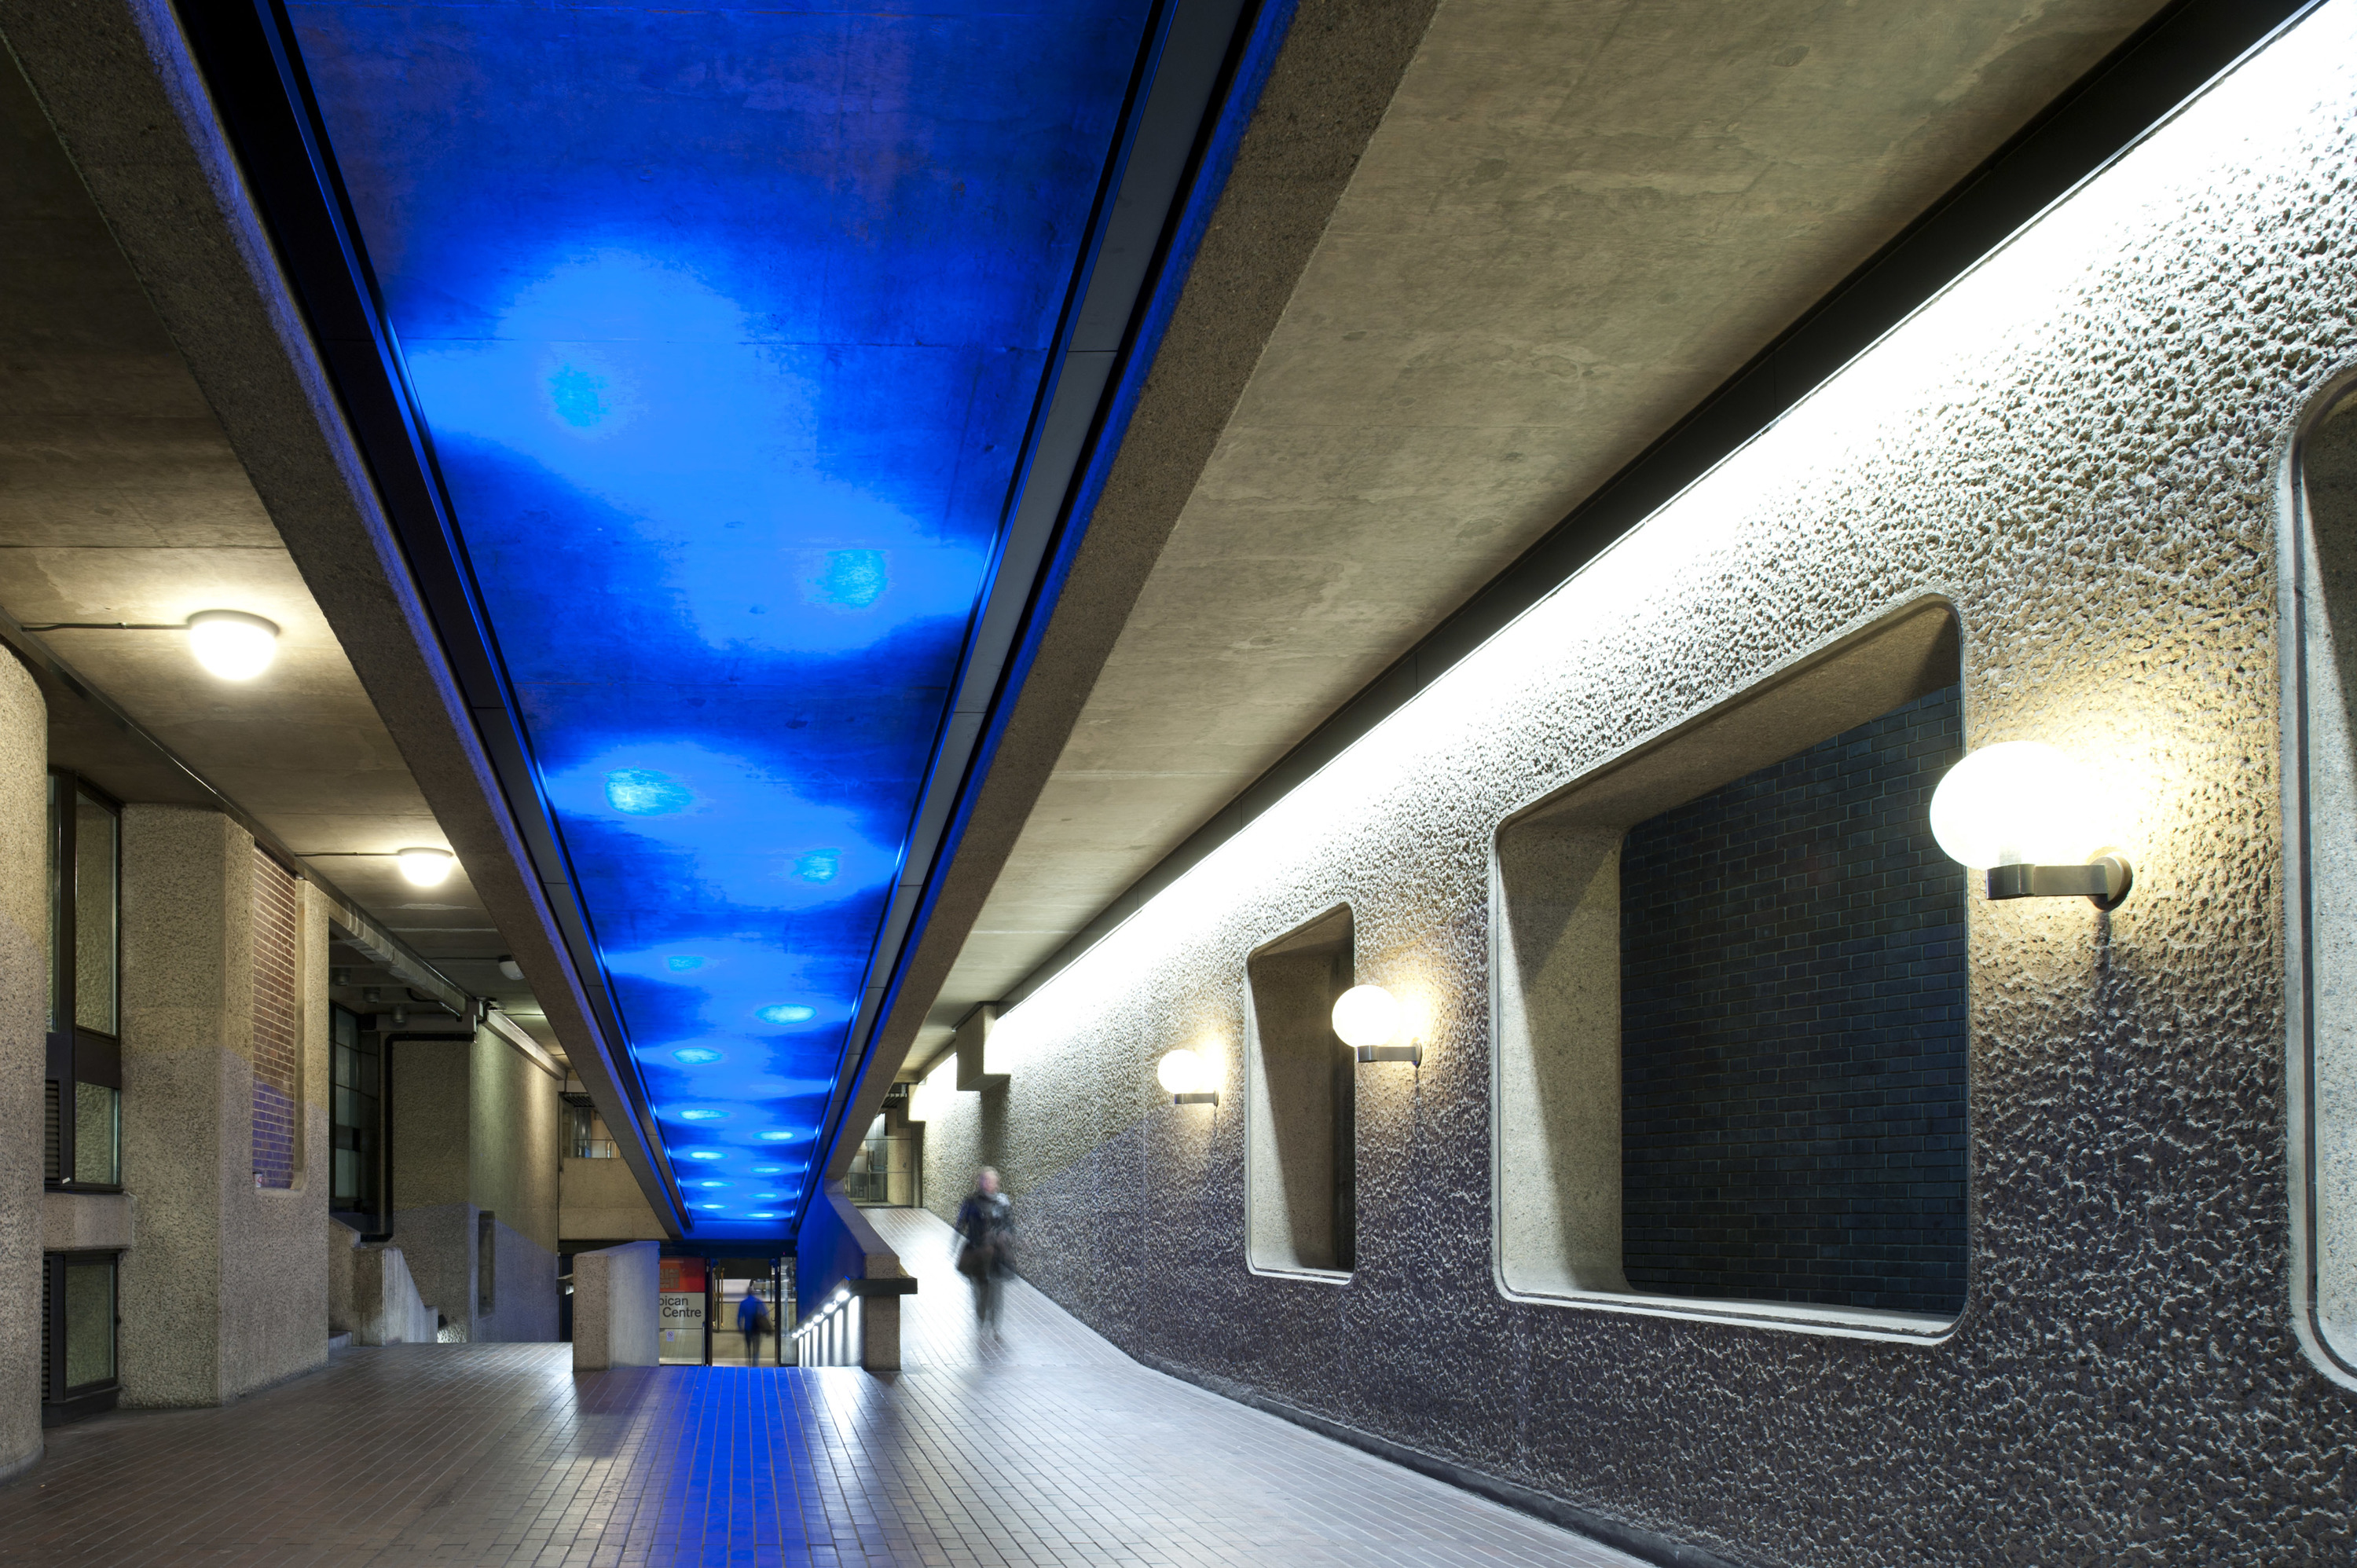 Twelve things you didn't know about the Barbican